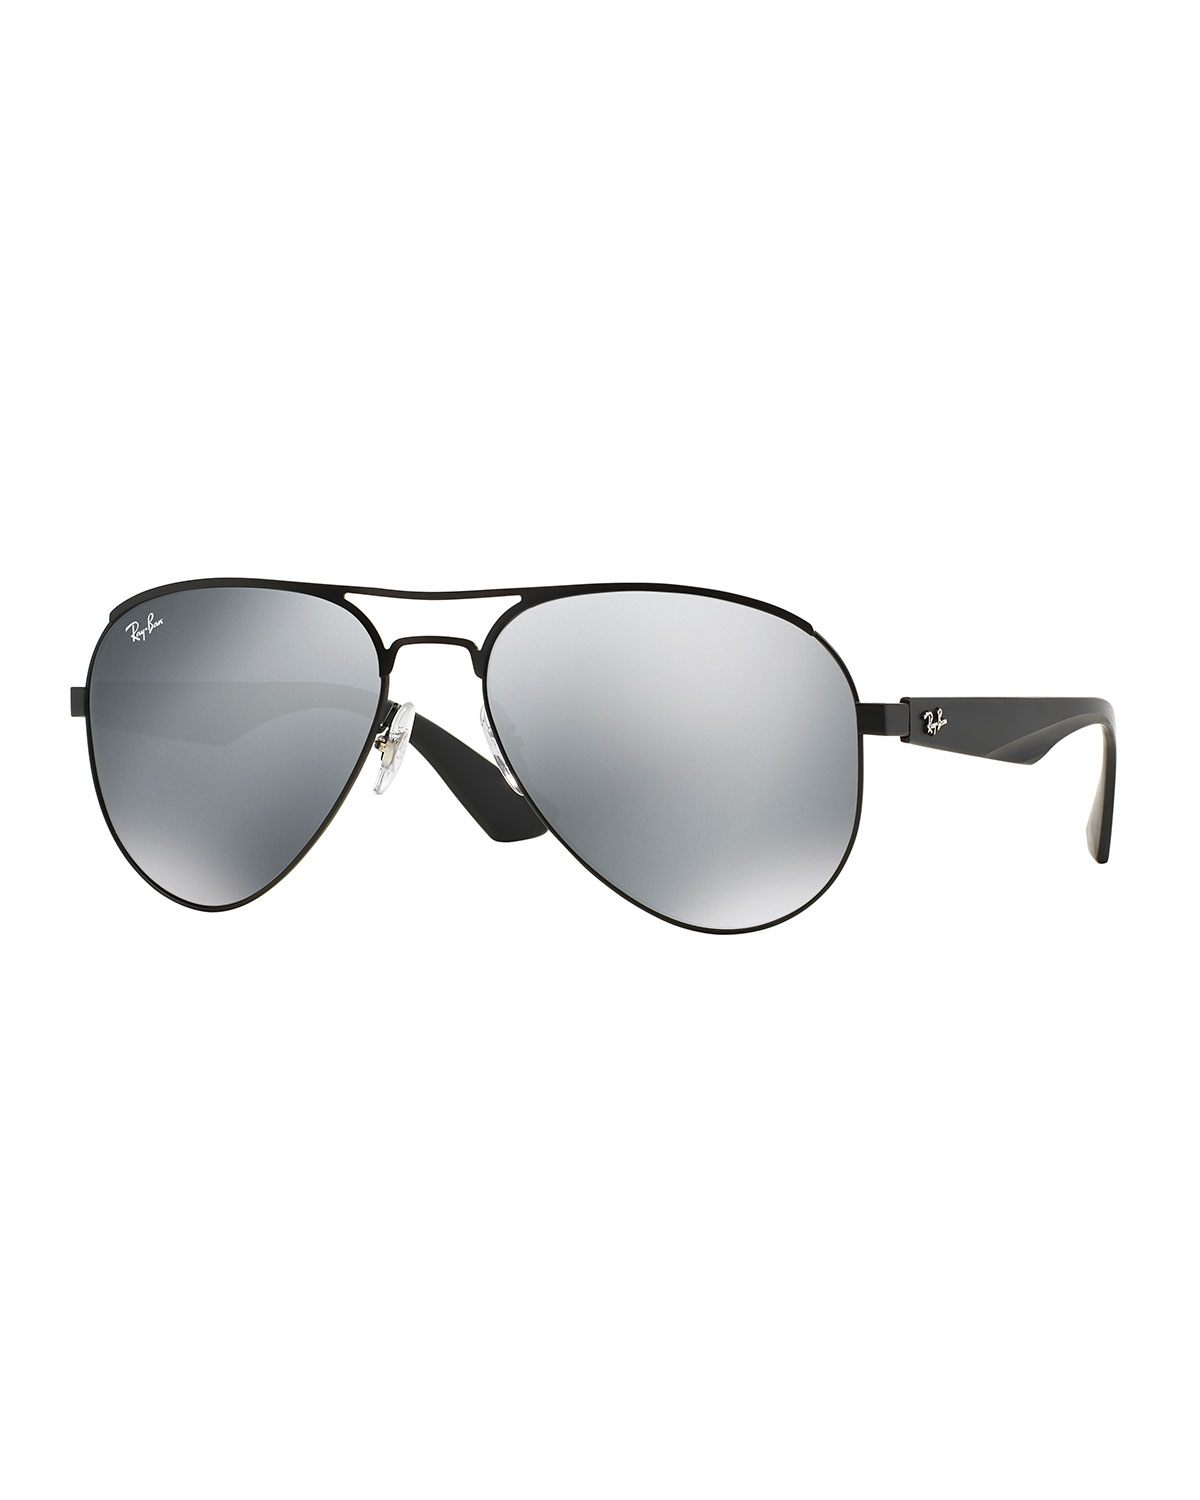 Ray ban aviator sunglasses with mirror lens in black for for Mirror sunglasses